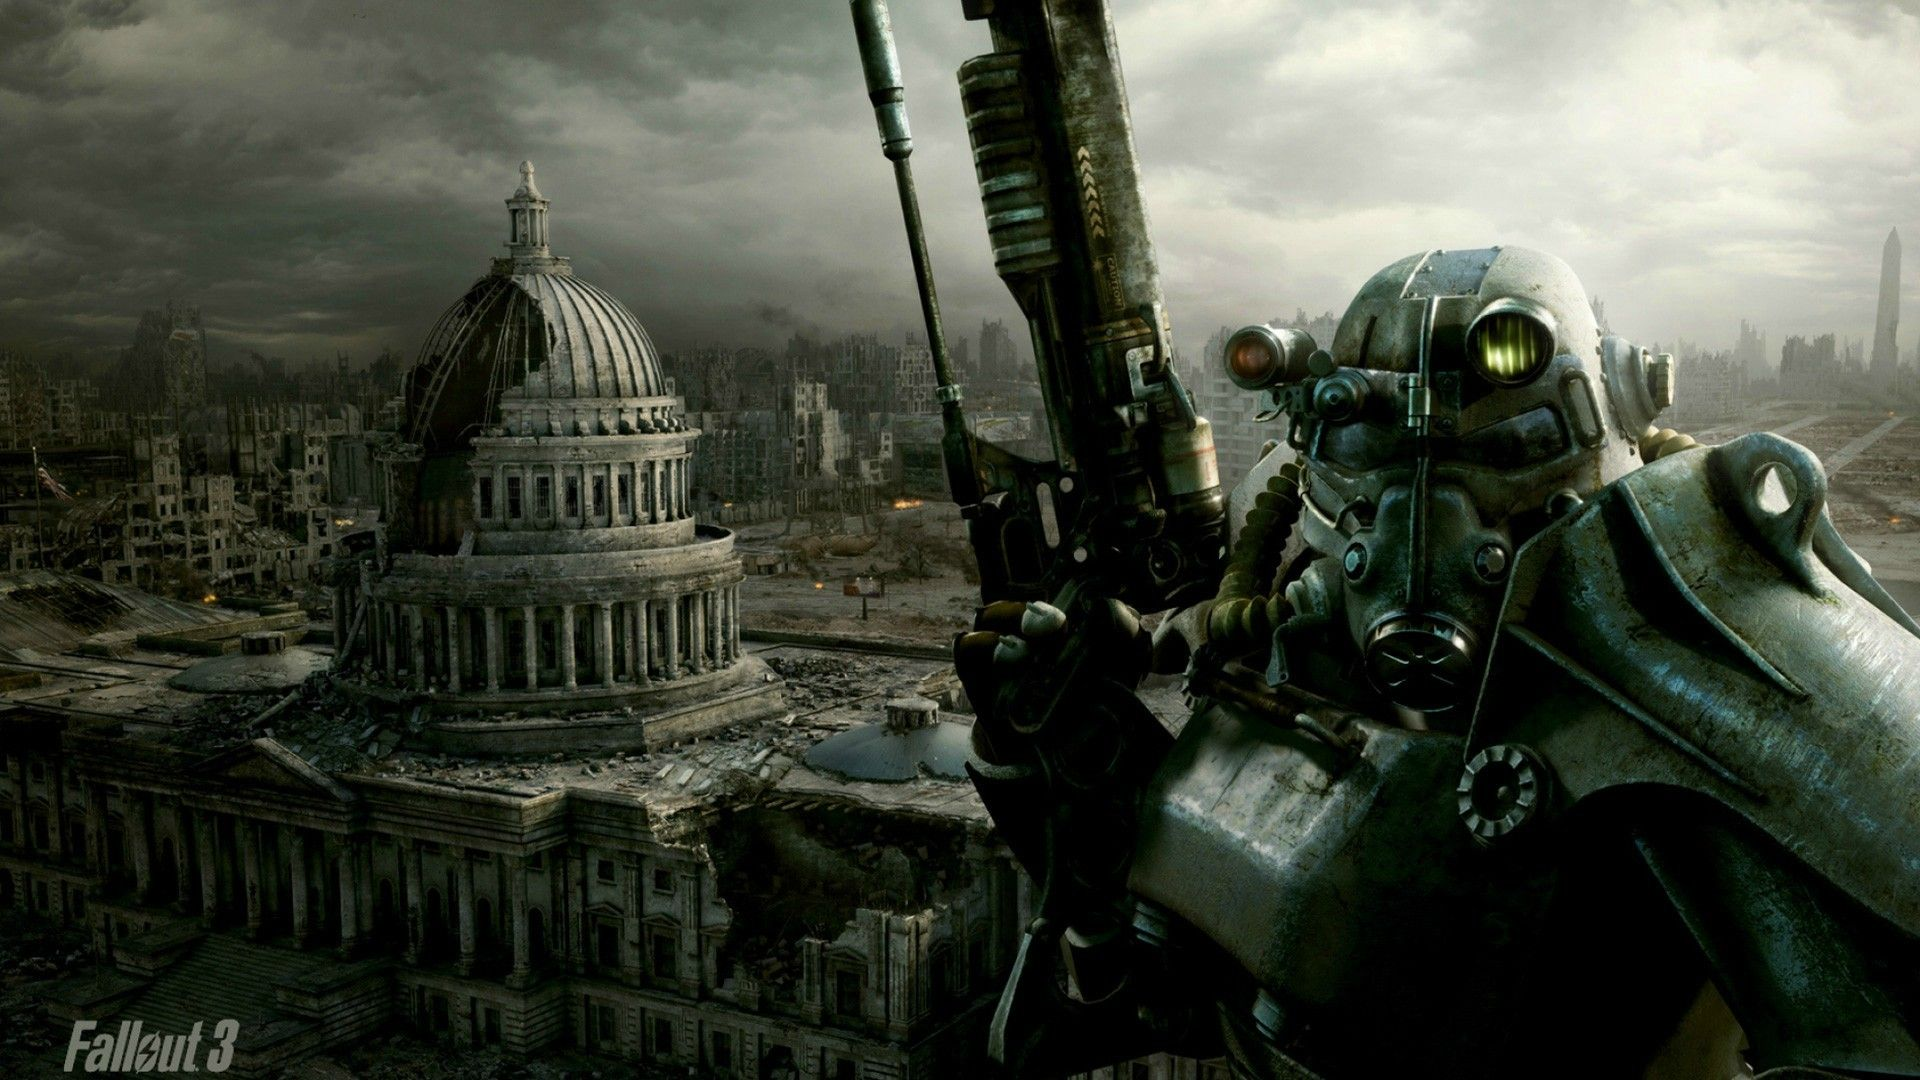 575 Wallpapers All 1080p No Watermarks Fallout Wallpaper